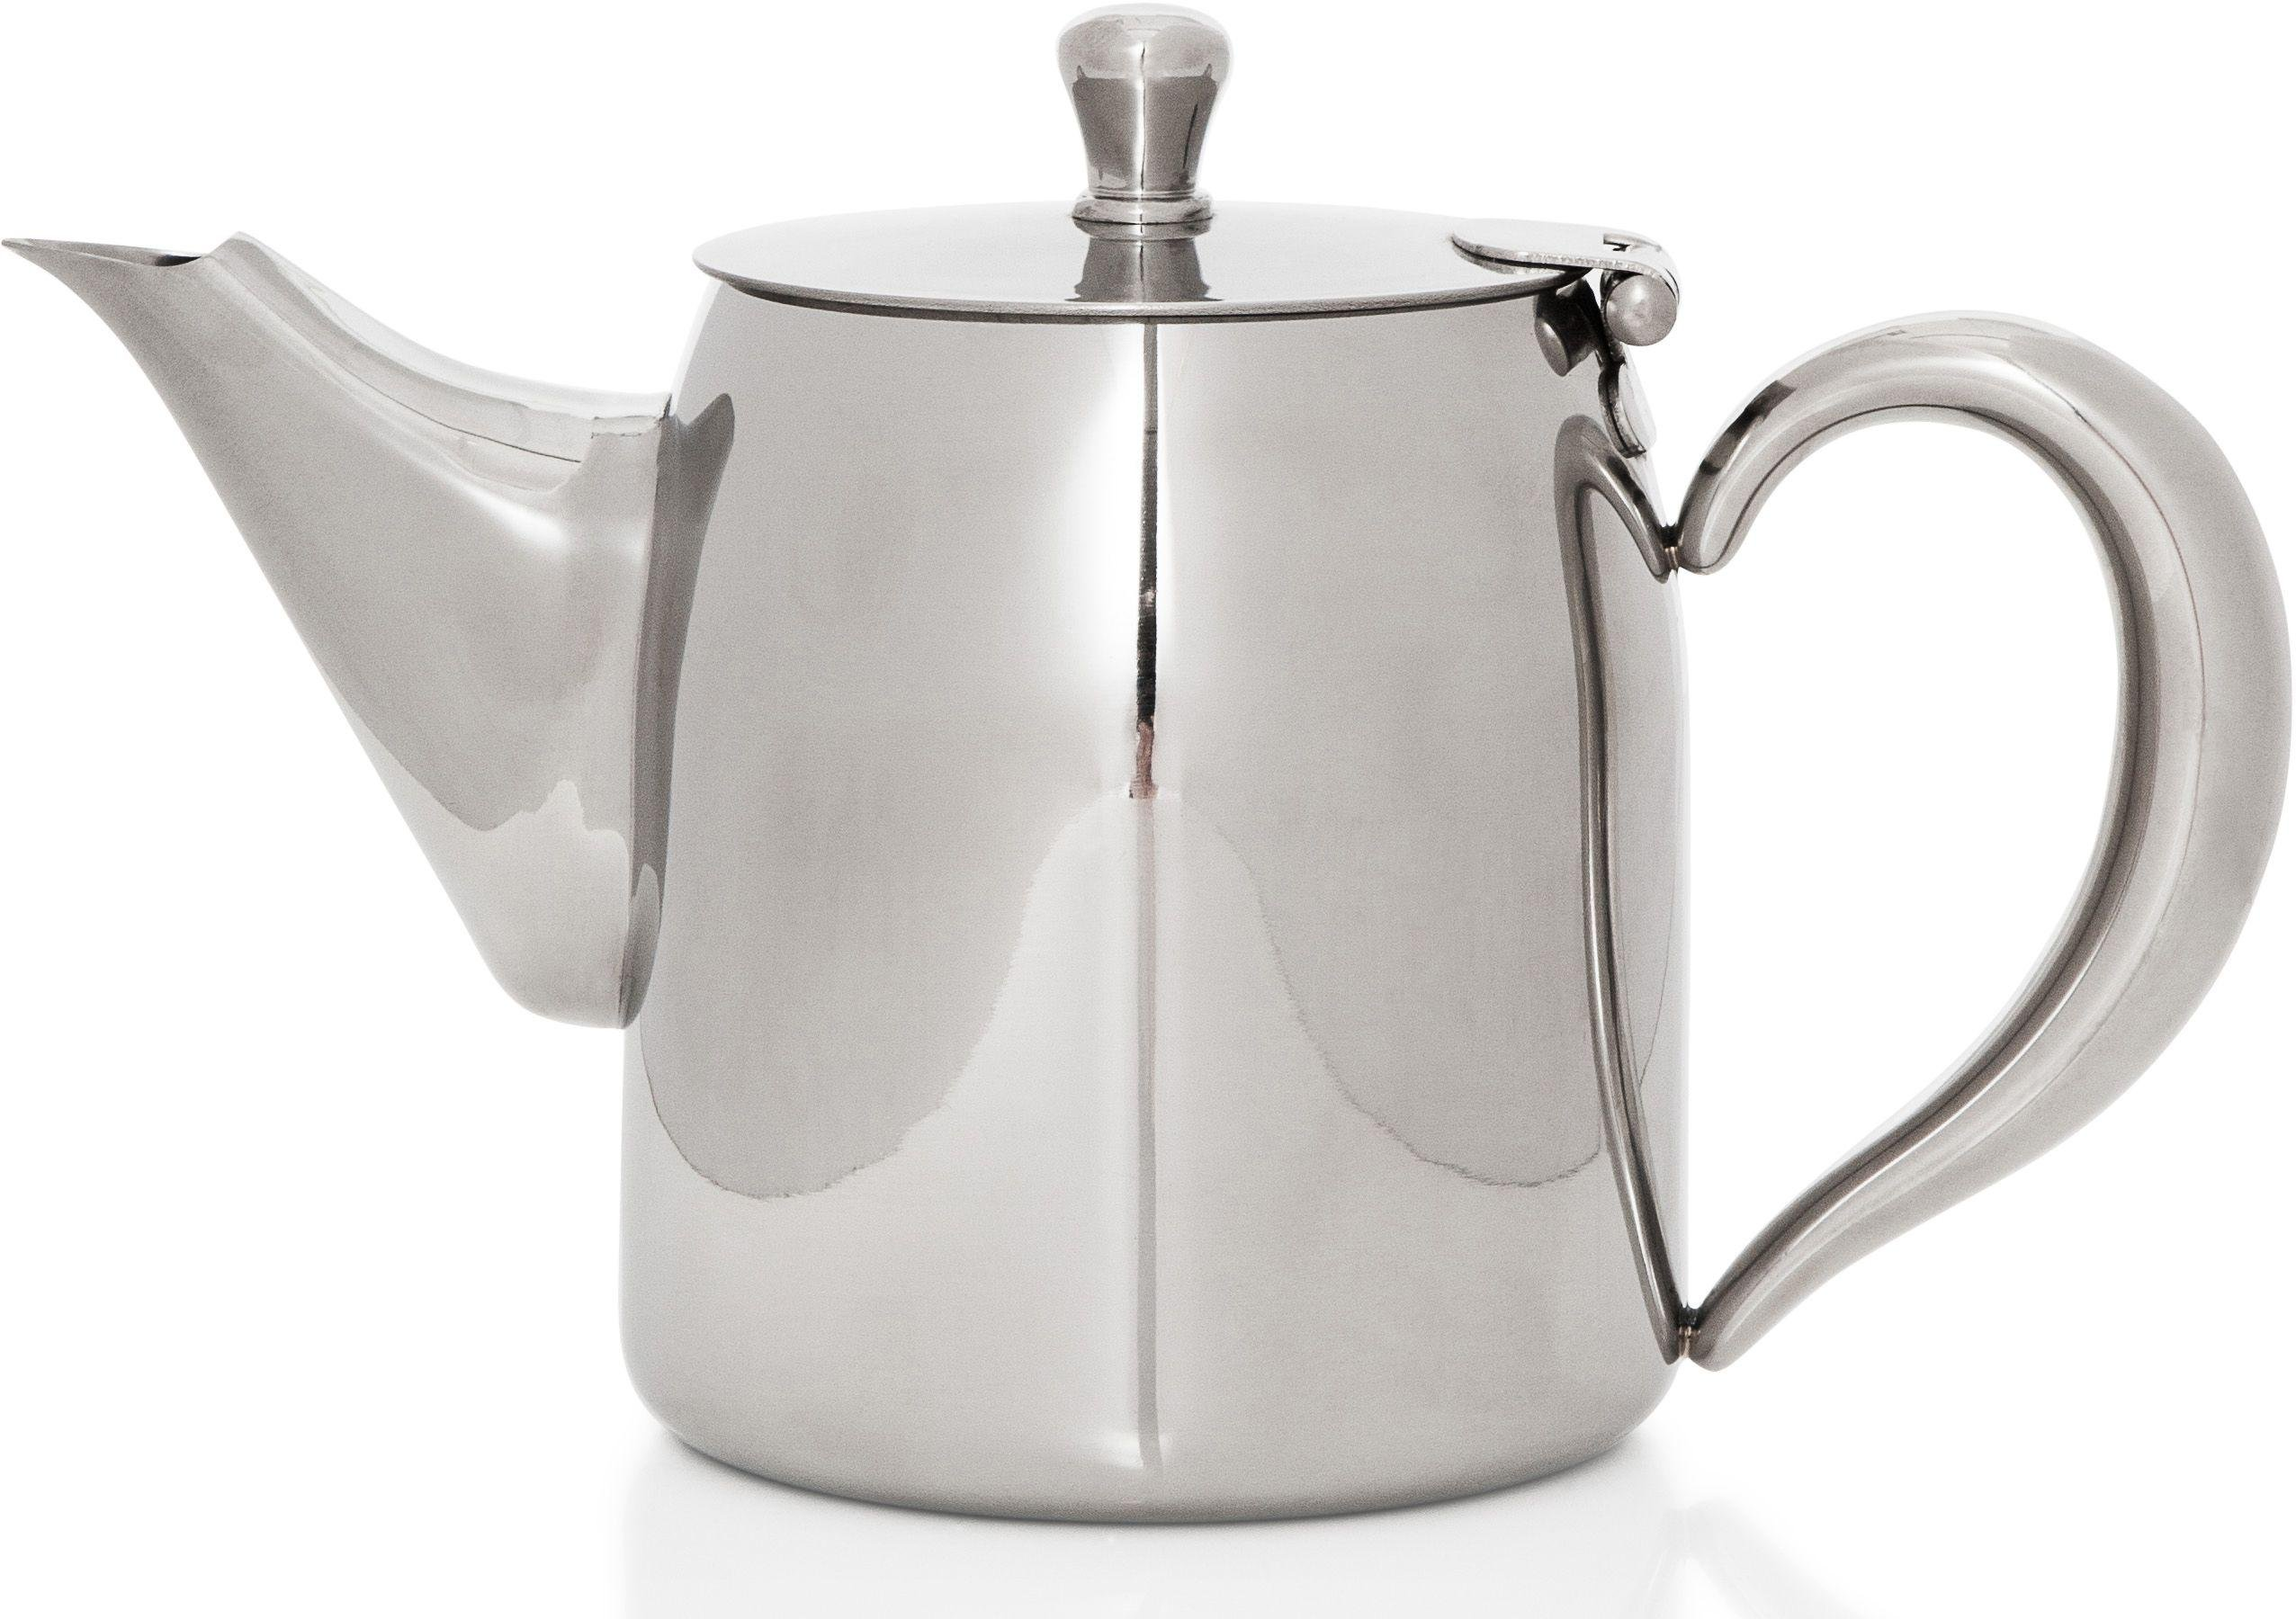 Image of Sabichi Classic Stainless Steel Teapot 720ml.